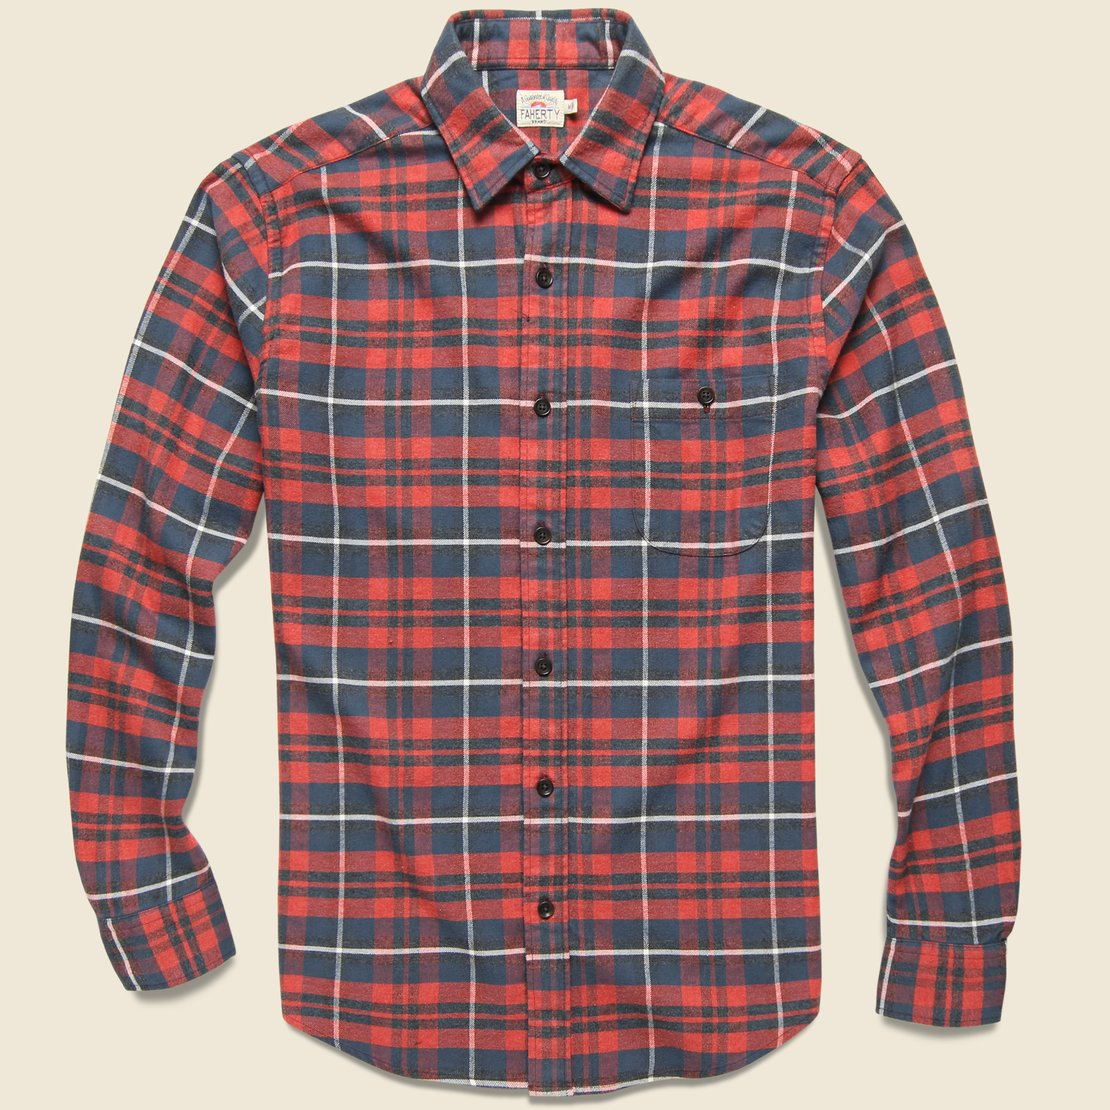 Faherty Stretch Seaview Shirt - Red/Charcoal/Grey